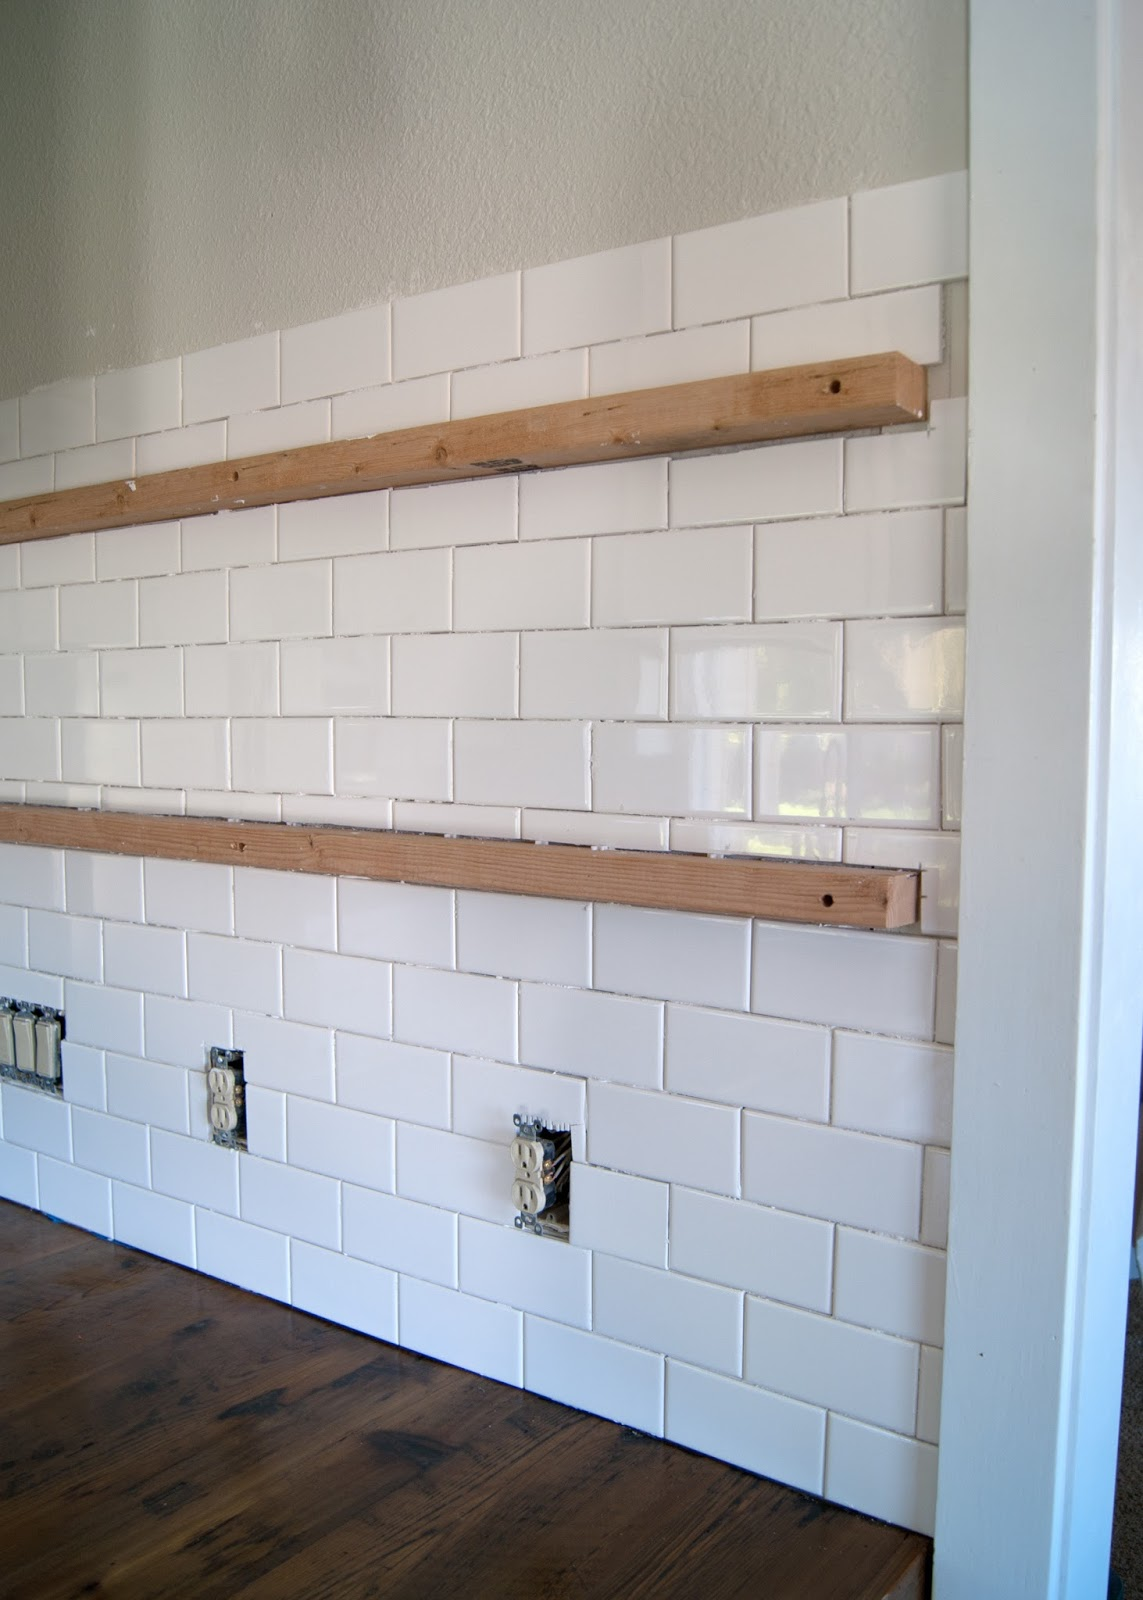 Subway tile installation + tips on grouting with Fusion Pro | Averie ...